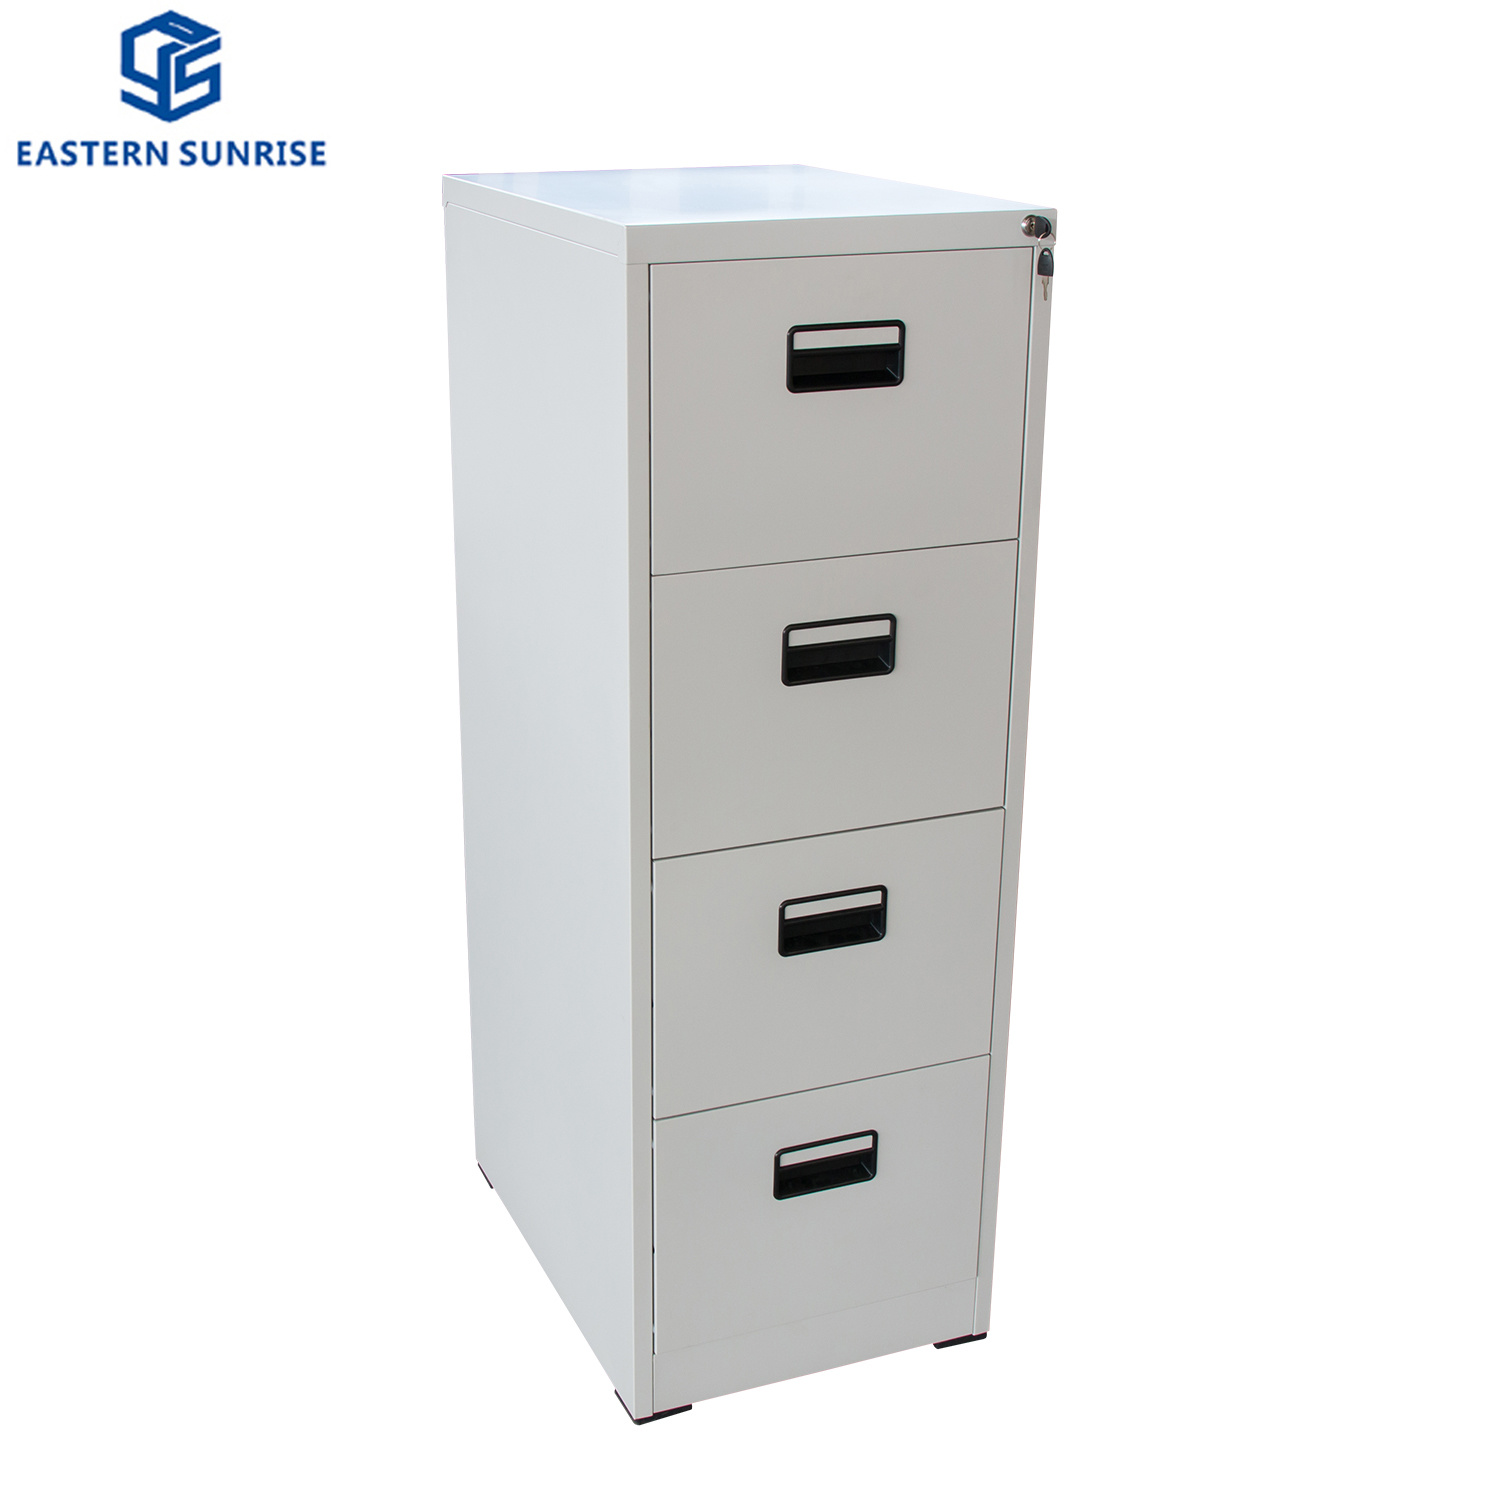 Image of: China Certified Bedroom Office Four Drawers Vertical Filing Cabinet China Vertical Filing Cabinet Fire Resistant Filing Cabinet